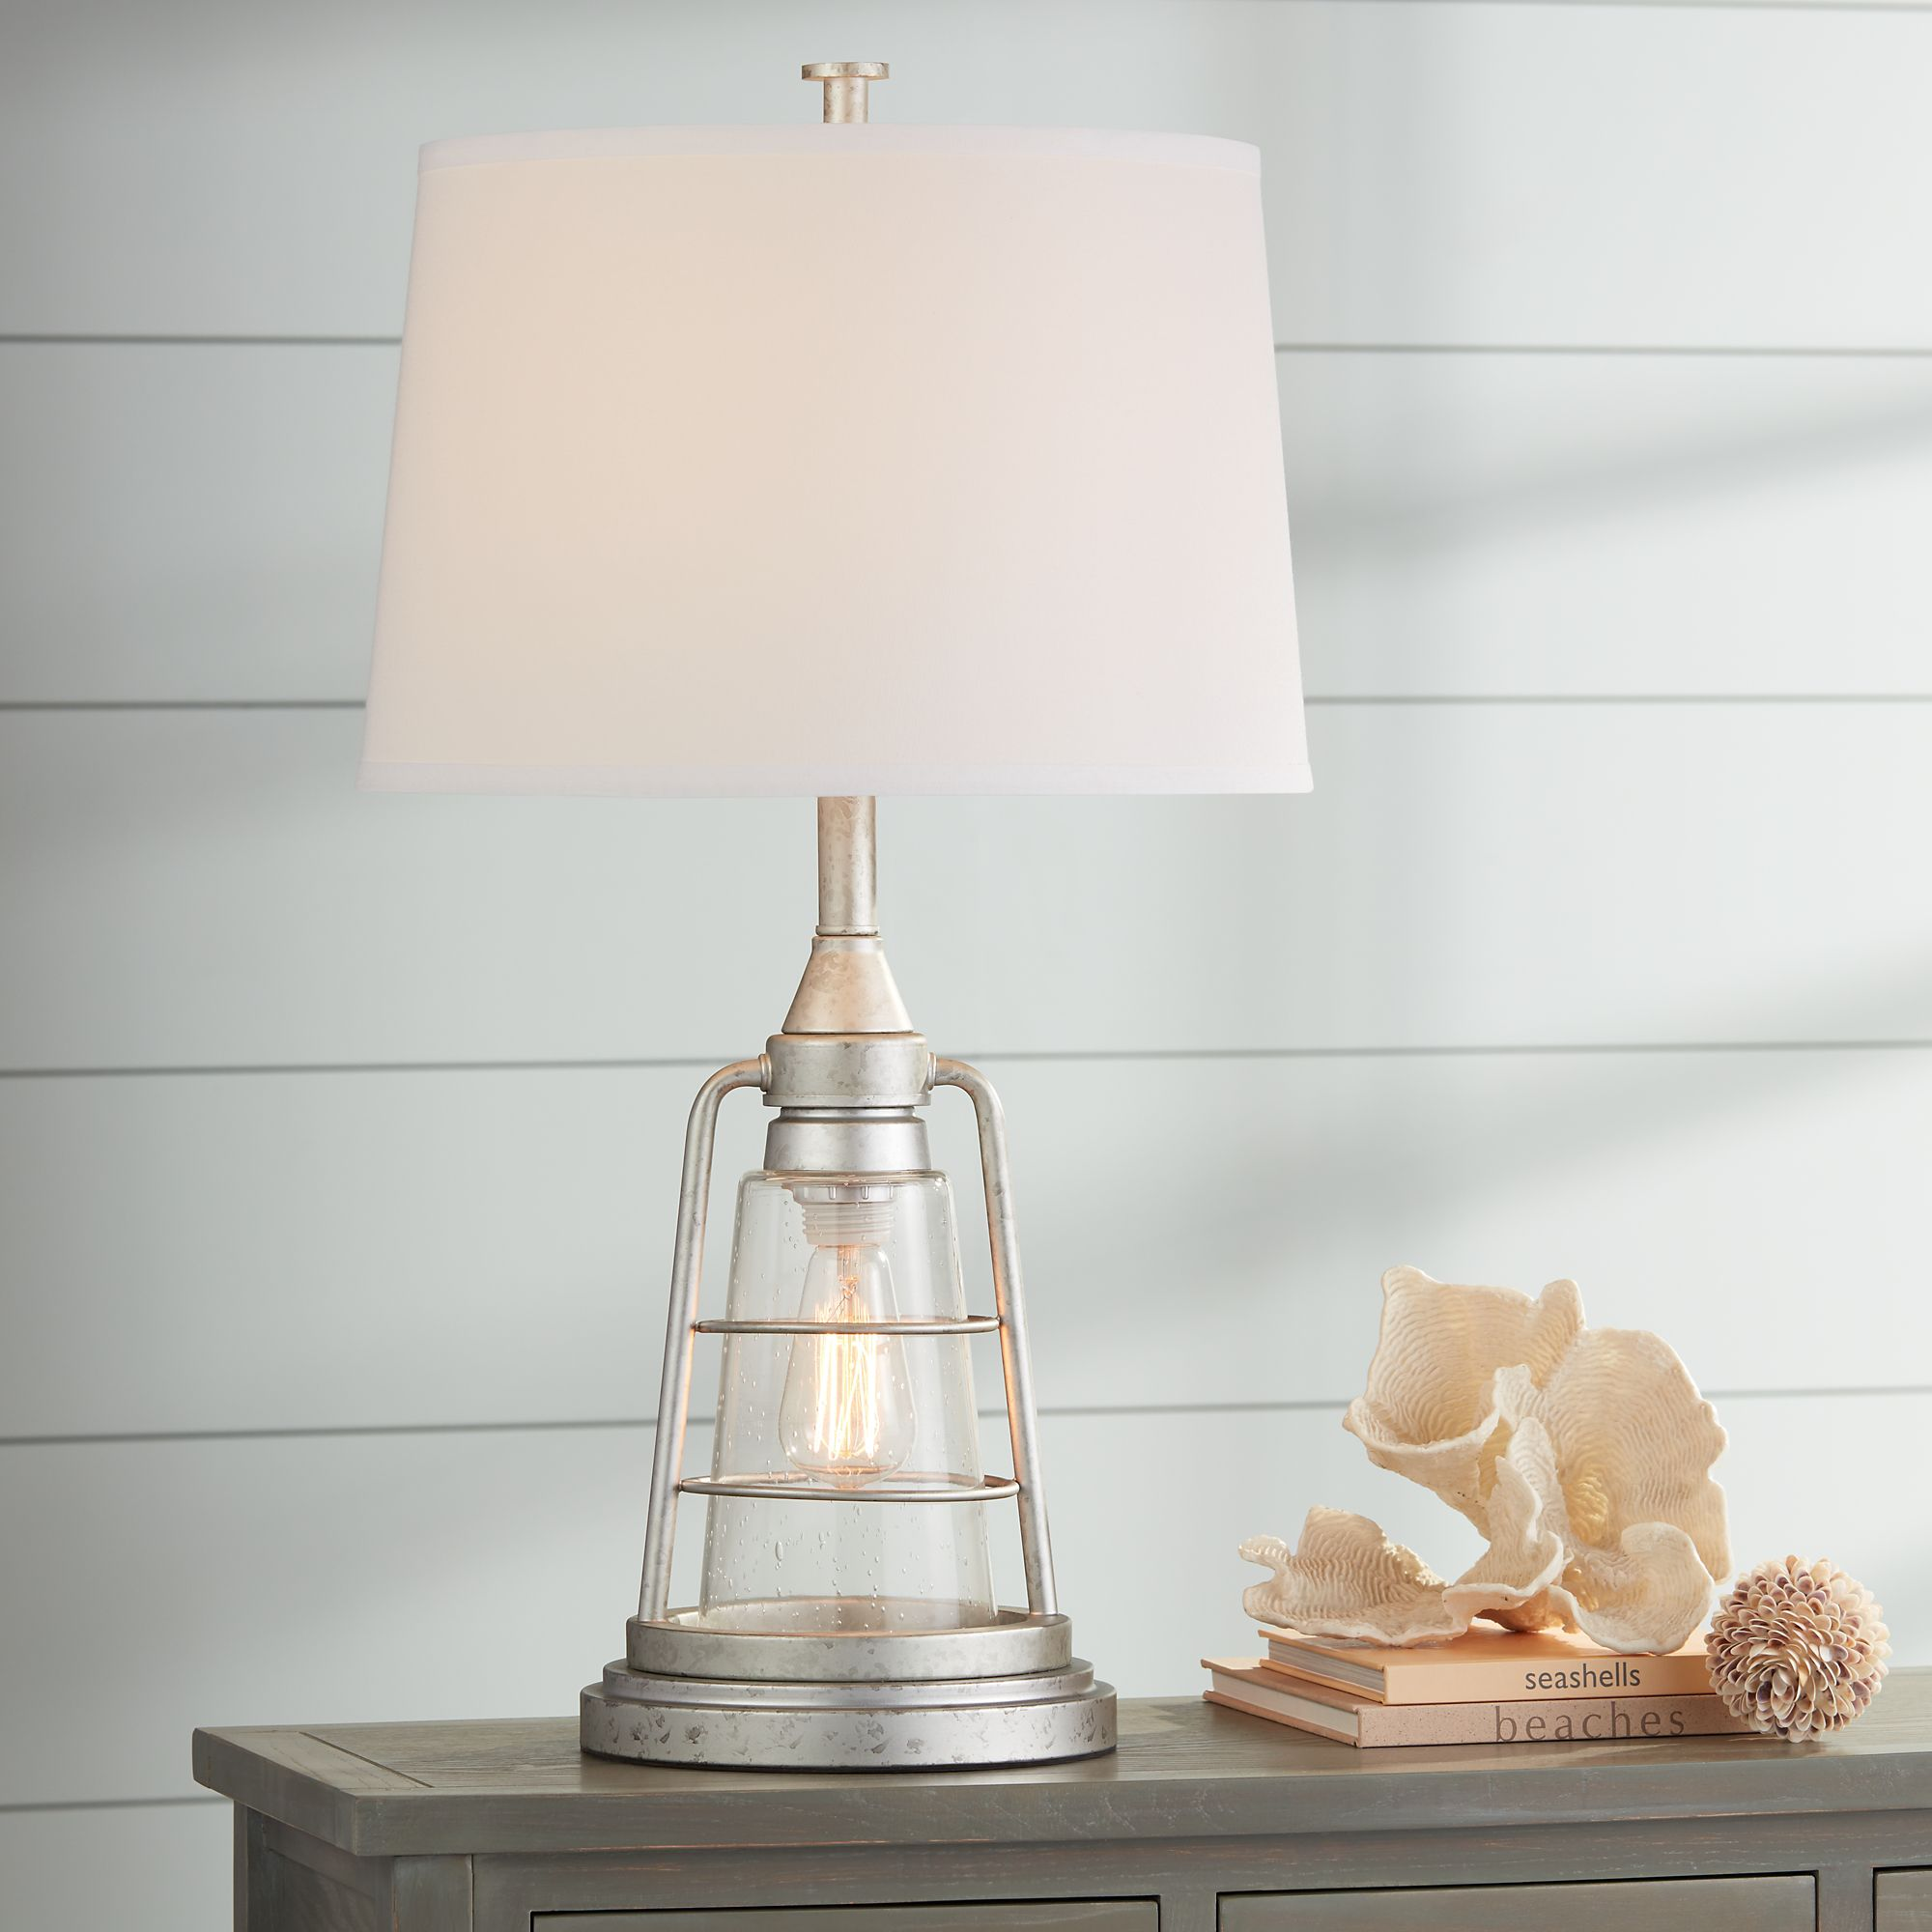 Franklin Iron Works Nautical Table Lamp With Nightlight Led Edison